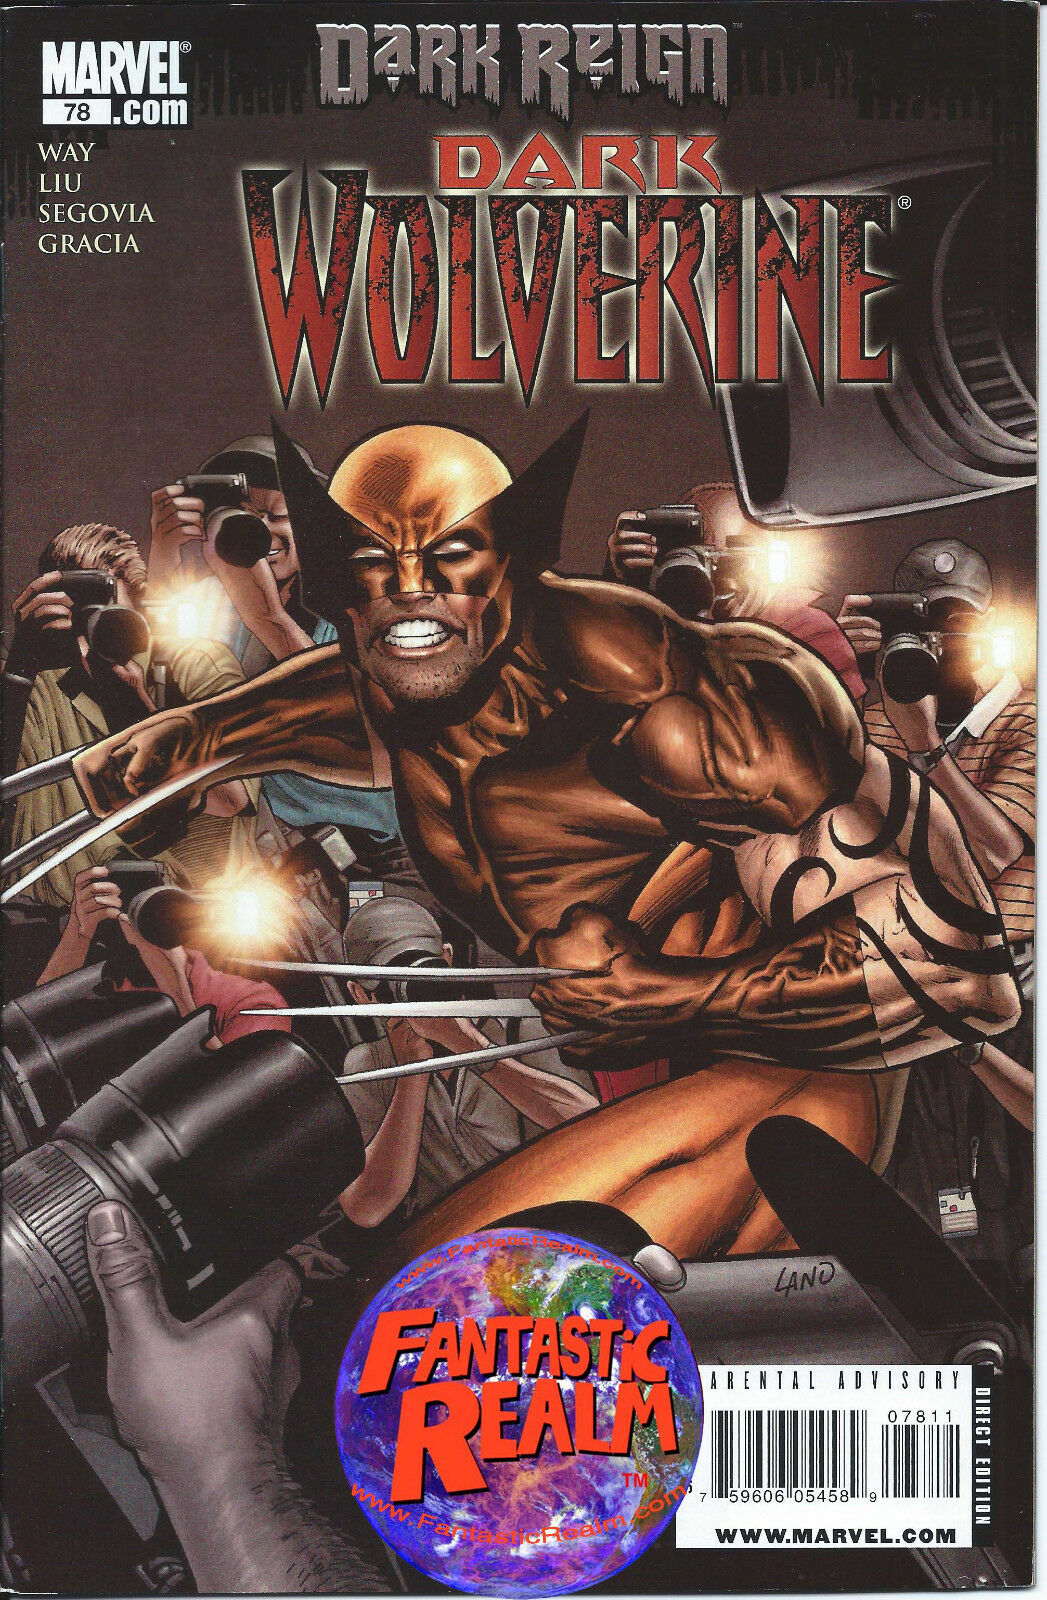 DARK WOLVERINE #78 (2009) MARVEL COMICS